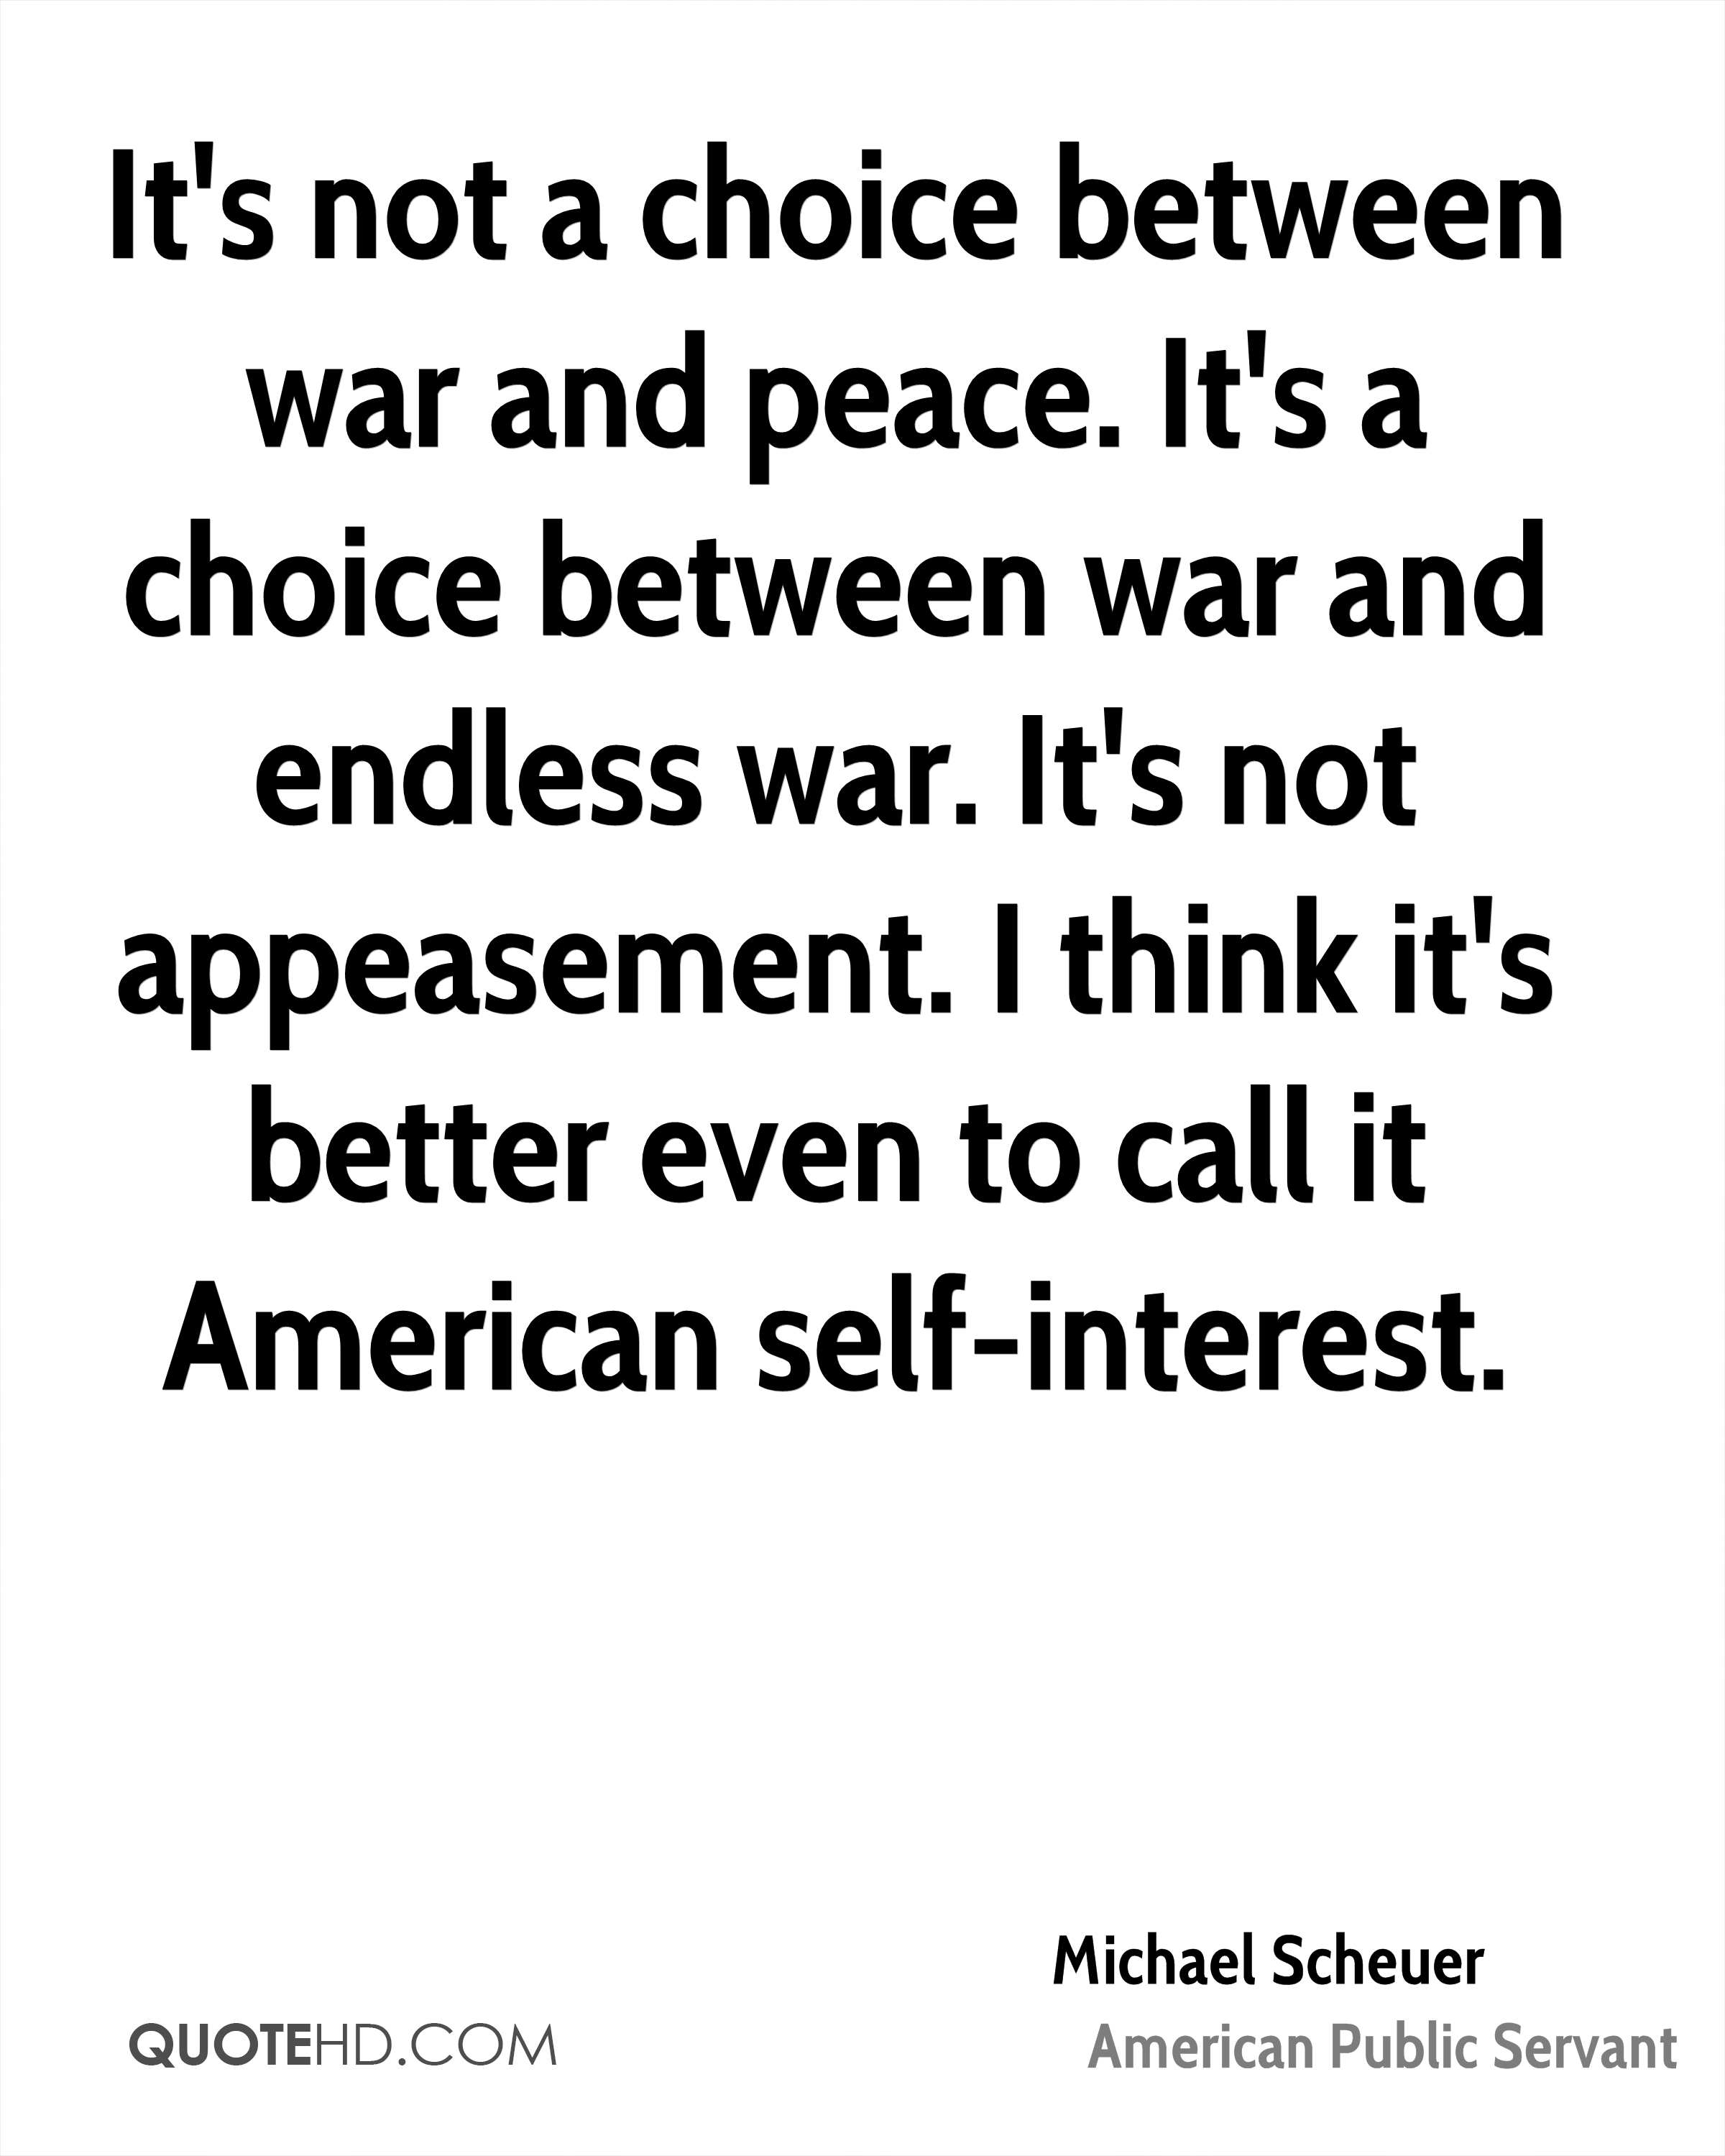 It's not a choice between war and peace. It's a choice between war and endless war. It's not appeasement. I think it's better even to call it American self-interest.